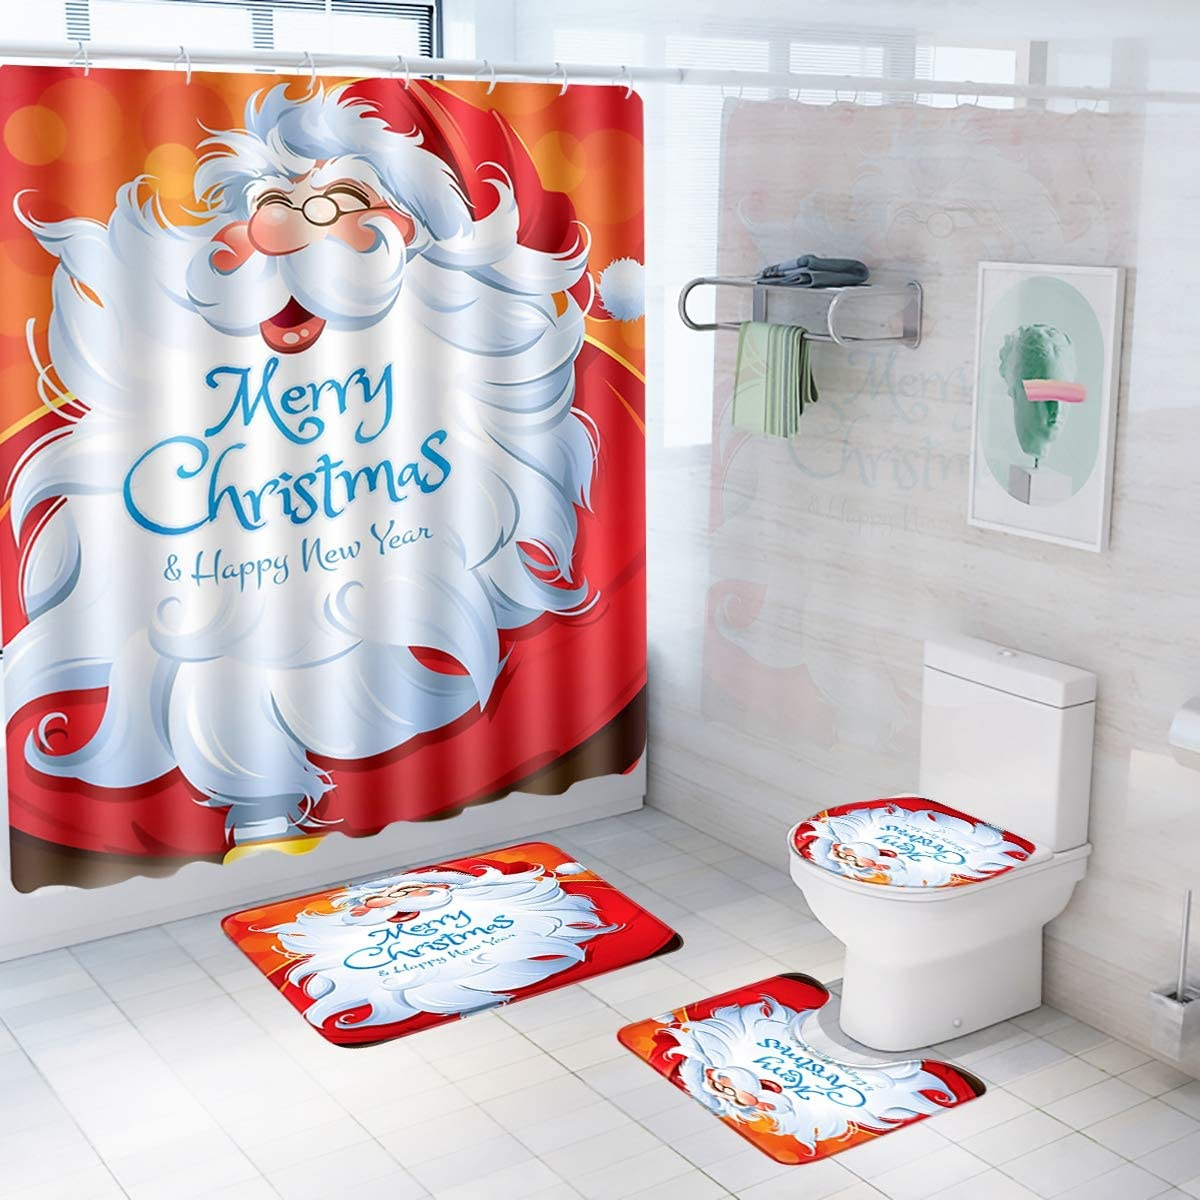 Patimate Christmas Bathroom Sets Decorations (Santa Toilet Seat Cover,  Non-Slip Christmas Bath Mat Set/Rugs, Christmas Santa Shower Curtain),